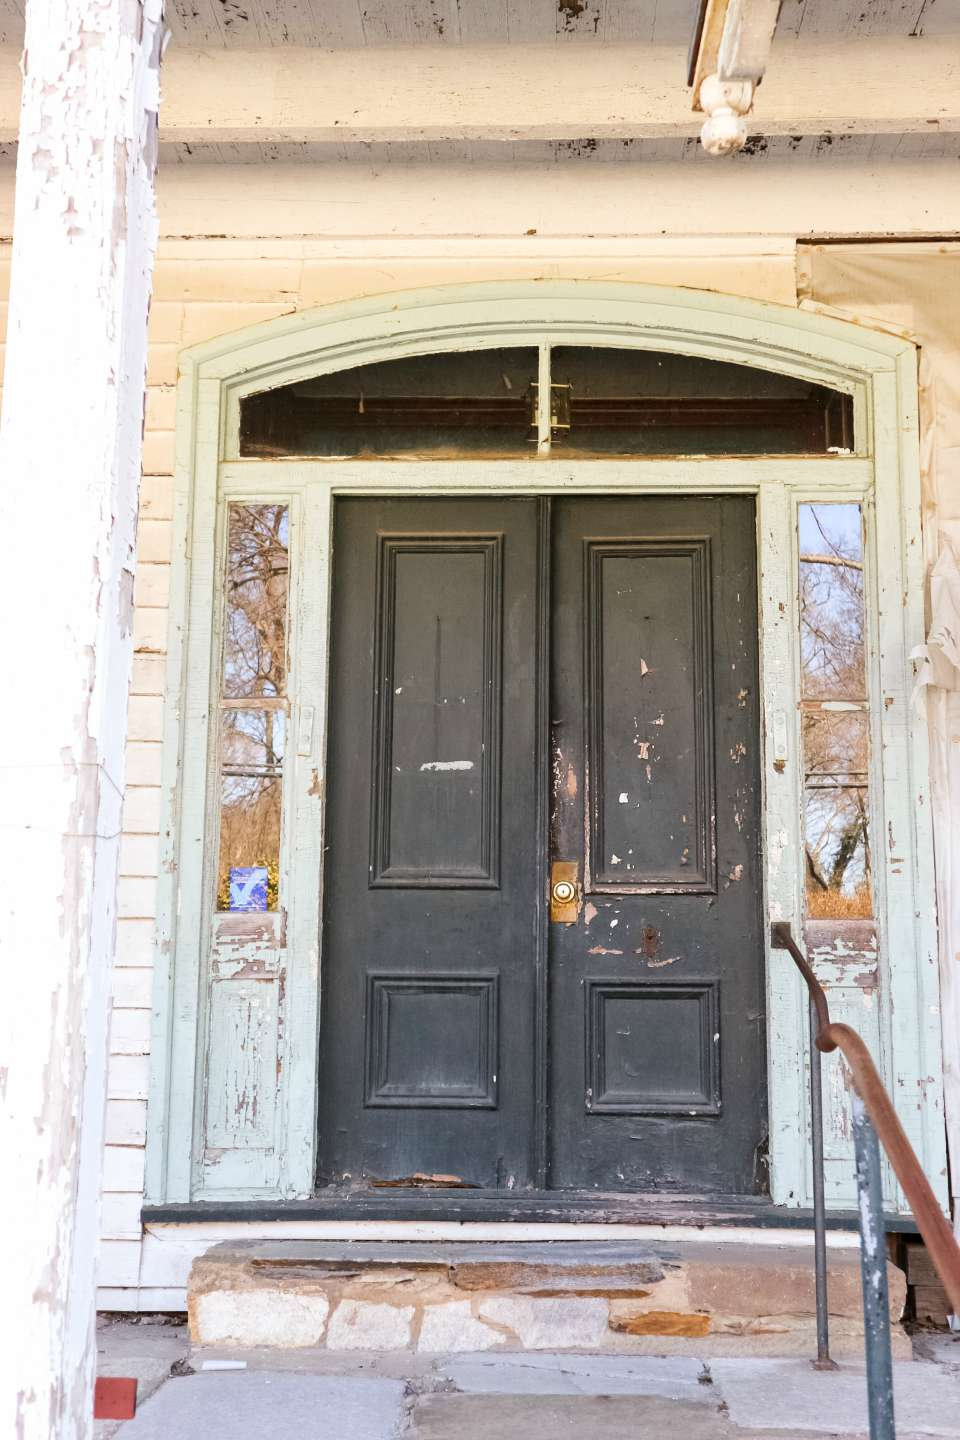 Places to Stay: The Colonial Inn in Hillsborough NC - I'm Fixin' To - @imfixintoblog |The Colonial Inn Hillsborough NC by popular NC travel blog, I'm Fixin' To: image of black painted double doors with peeling paint.